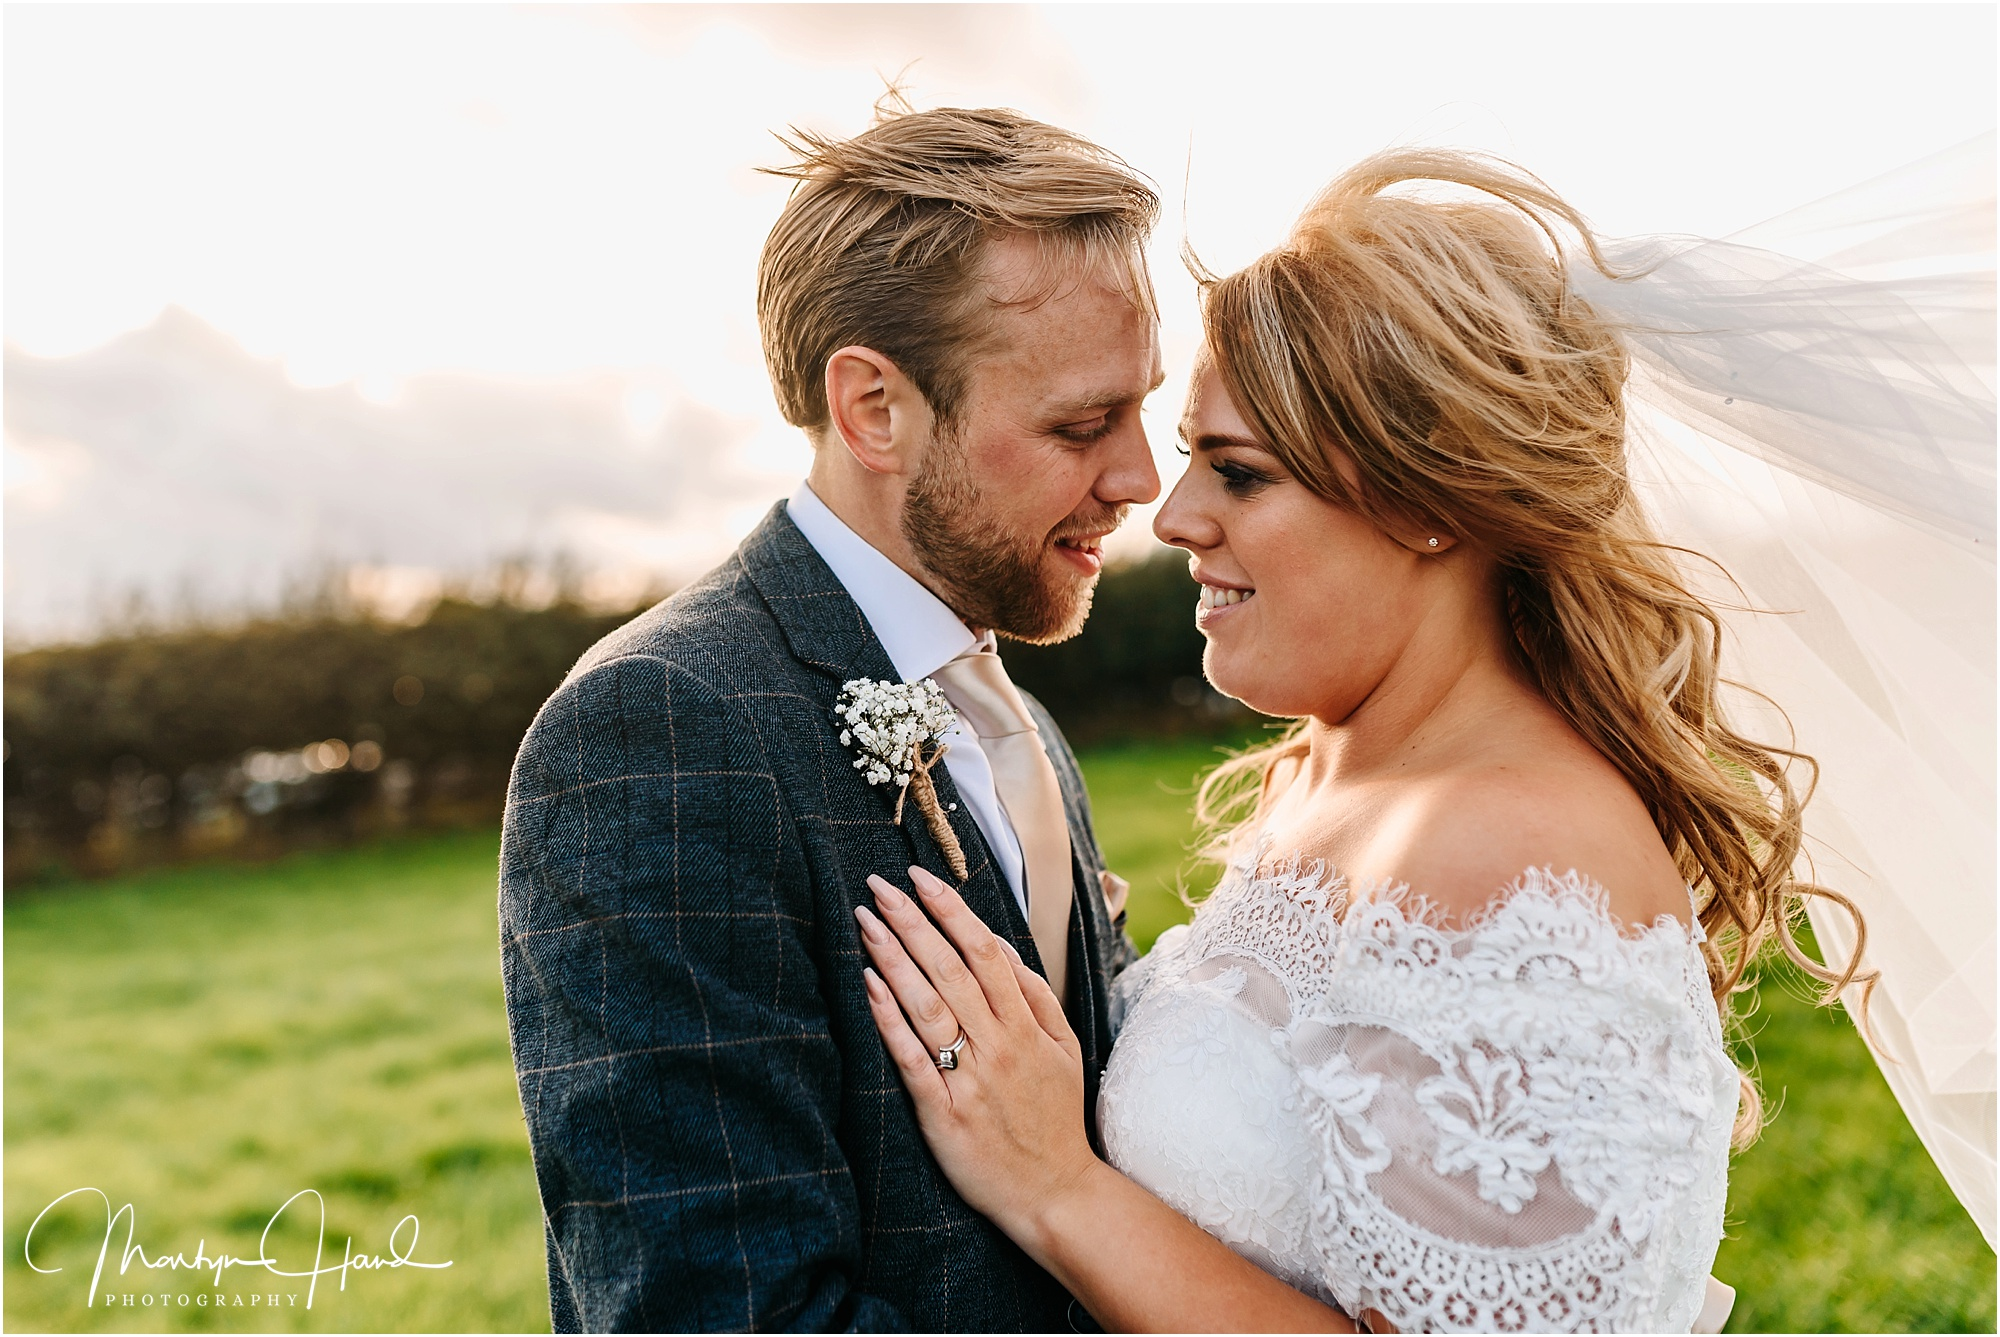 Laura & Mark Wedding Highlights-67.jpg